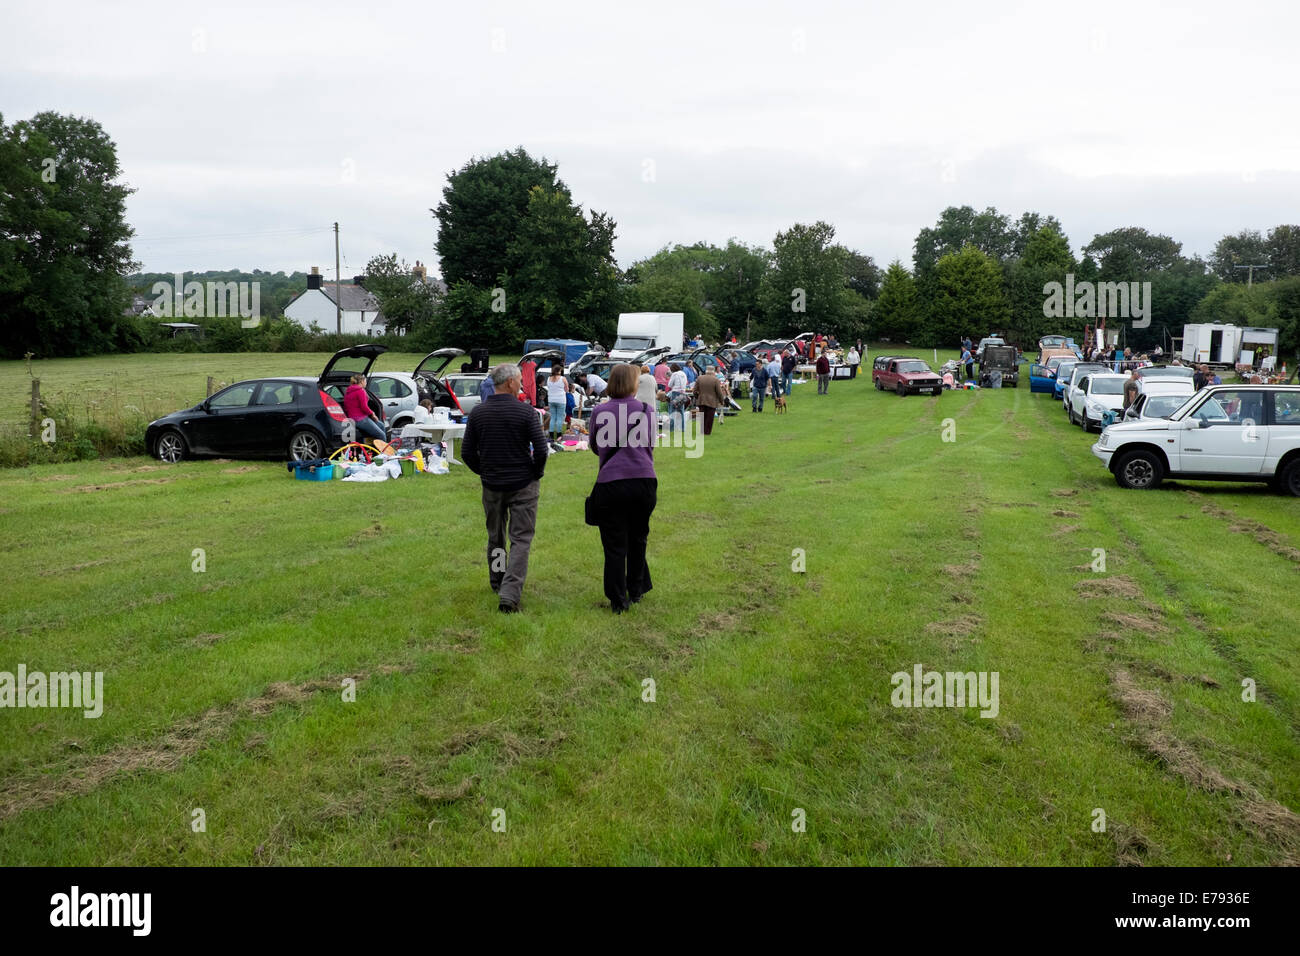 Car Boot Sale Bric a Brac Attic Junk Market Sell Stock Photo ...